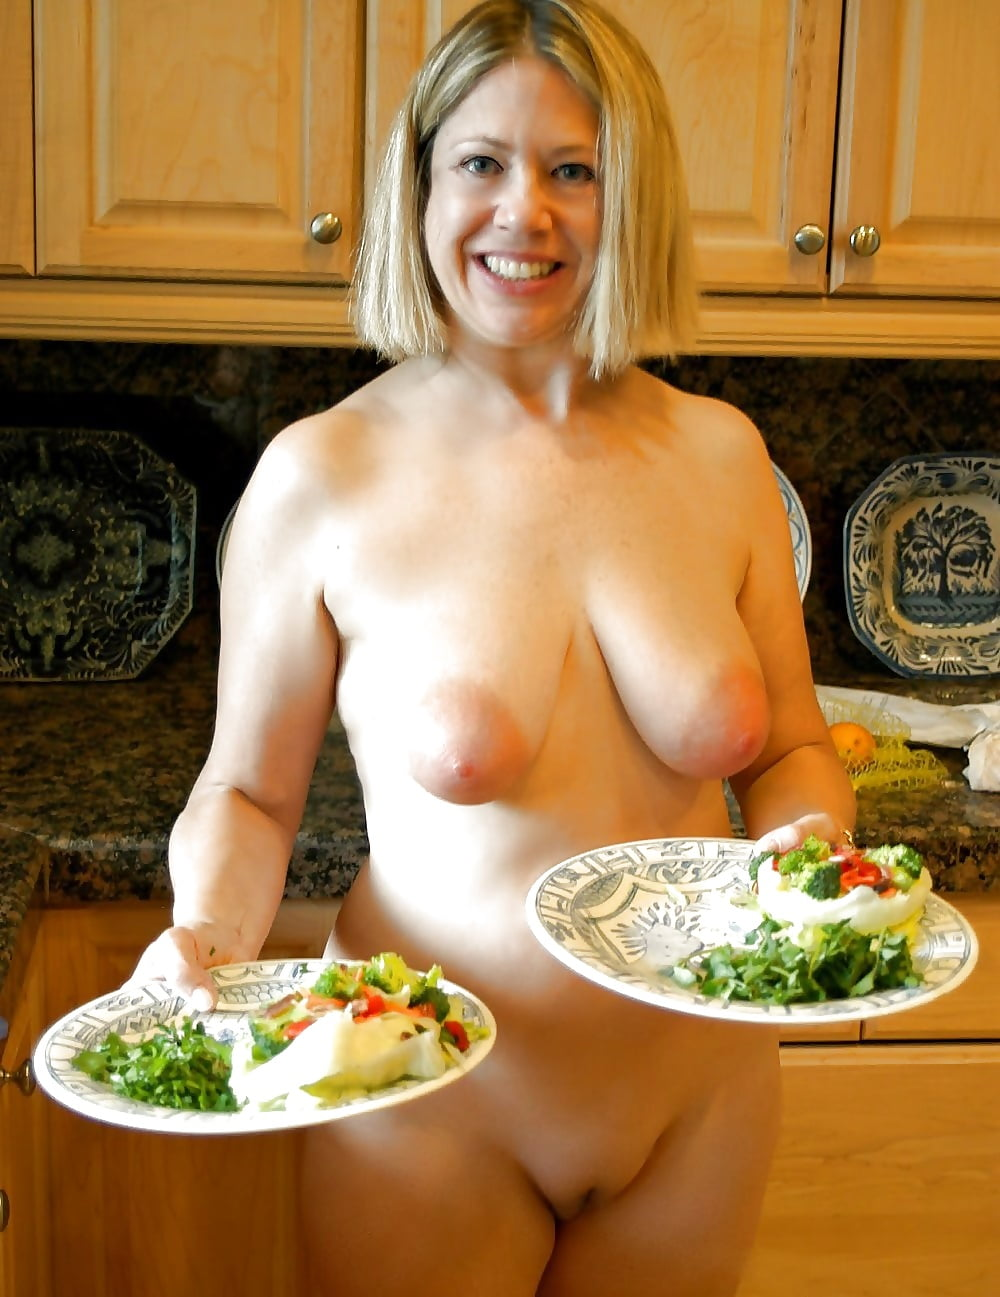 women-cooking-in-nude-my-mom-caught-nude